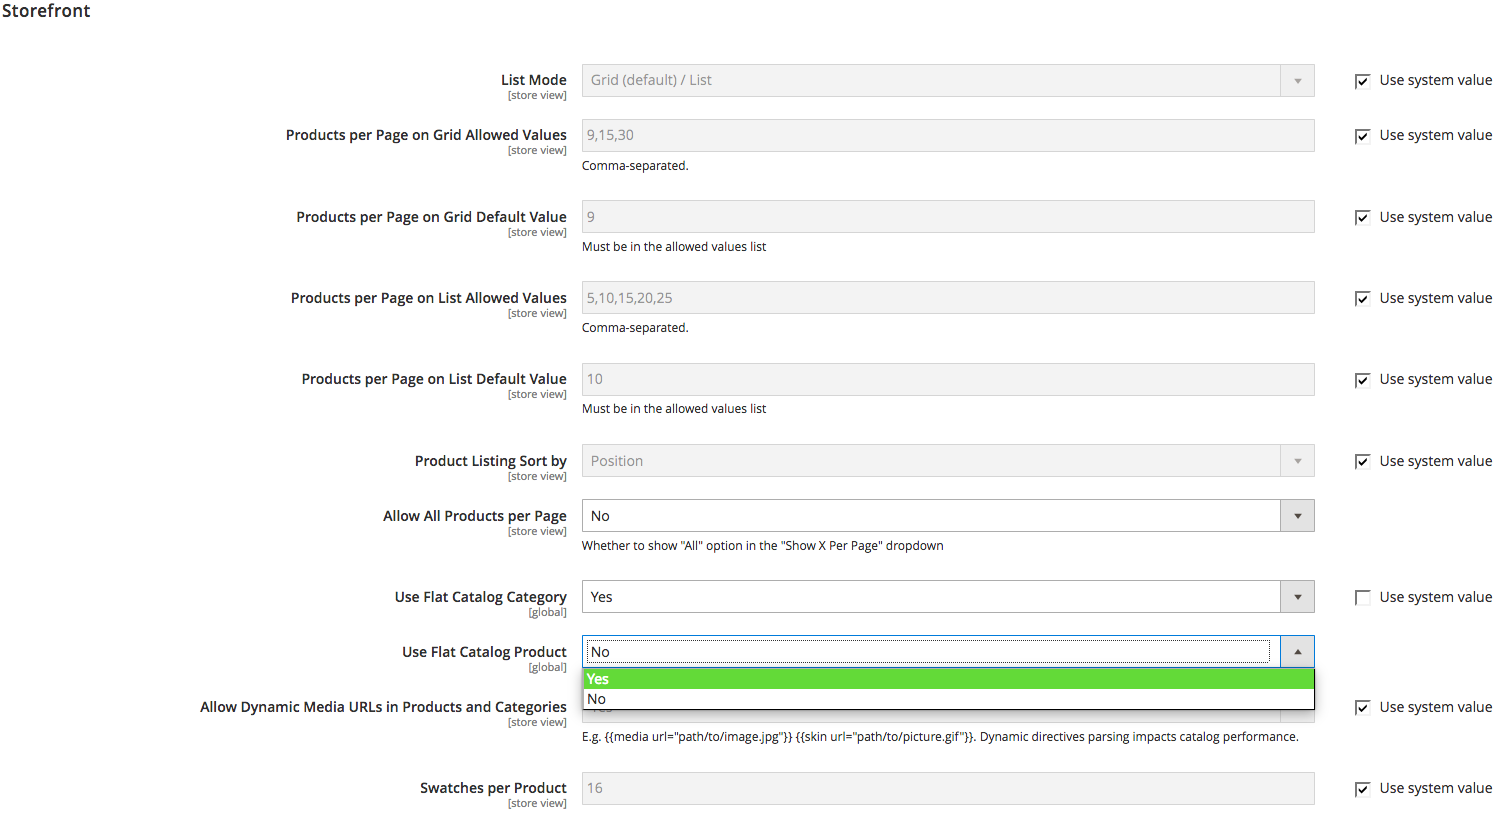 screenshot showing storefront settings in the magento admin